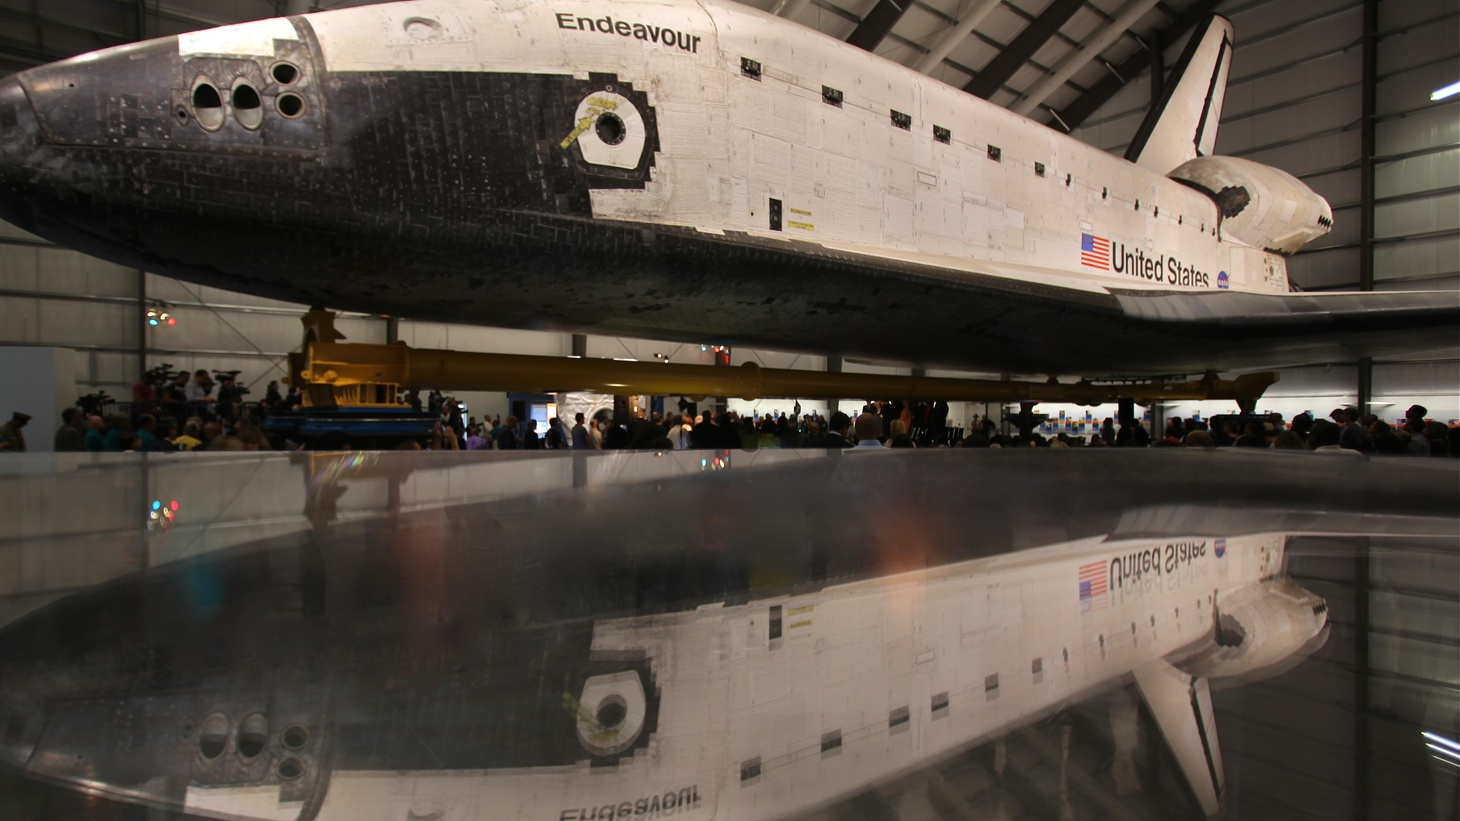 NASA ended its space shuttle program 2 years ago. Now private companies large and small are rushing in. From space tourism to colonizing Mars, what's realistic?